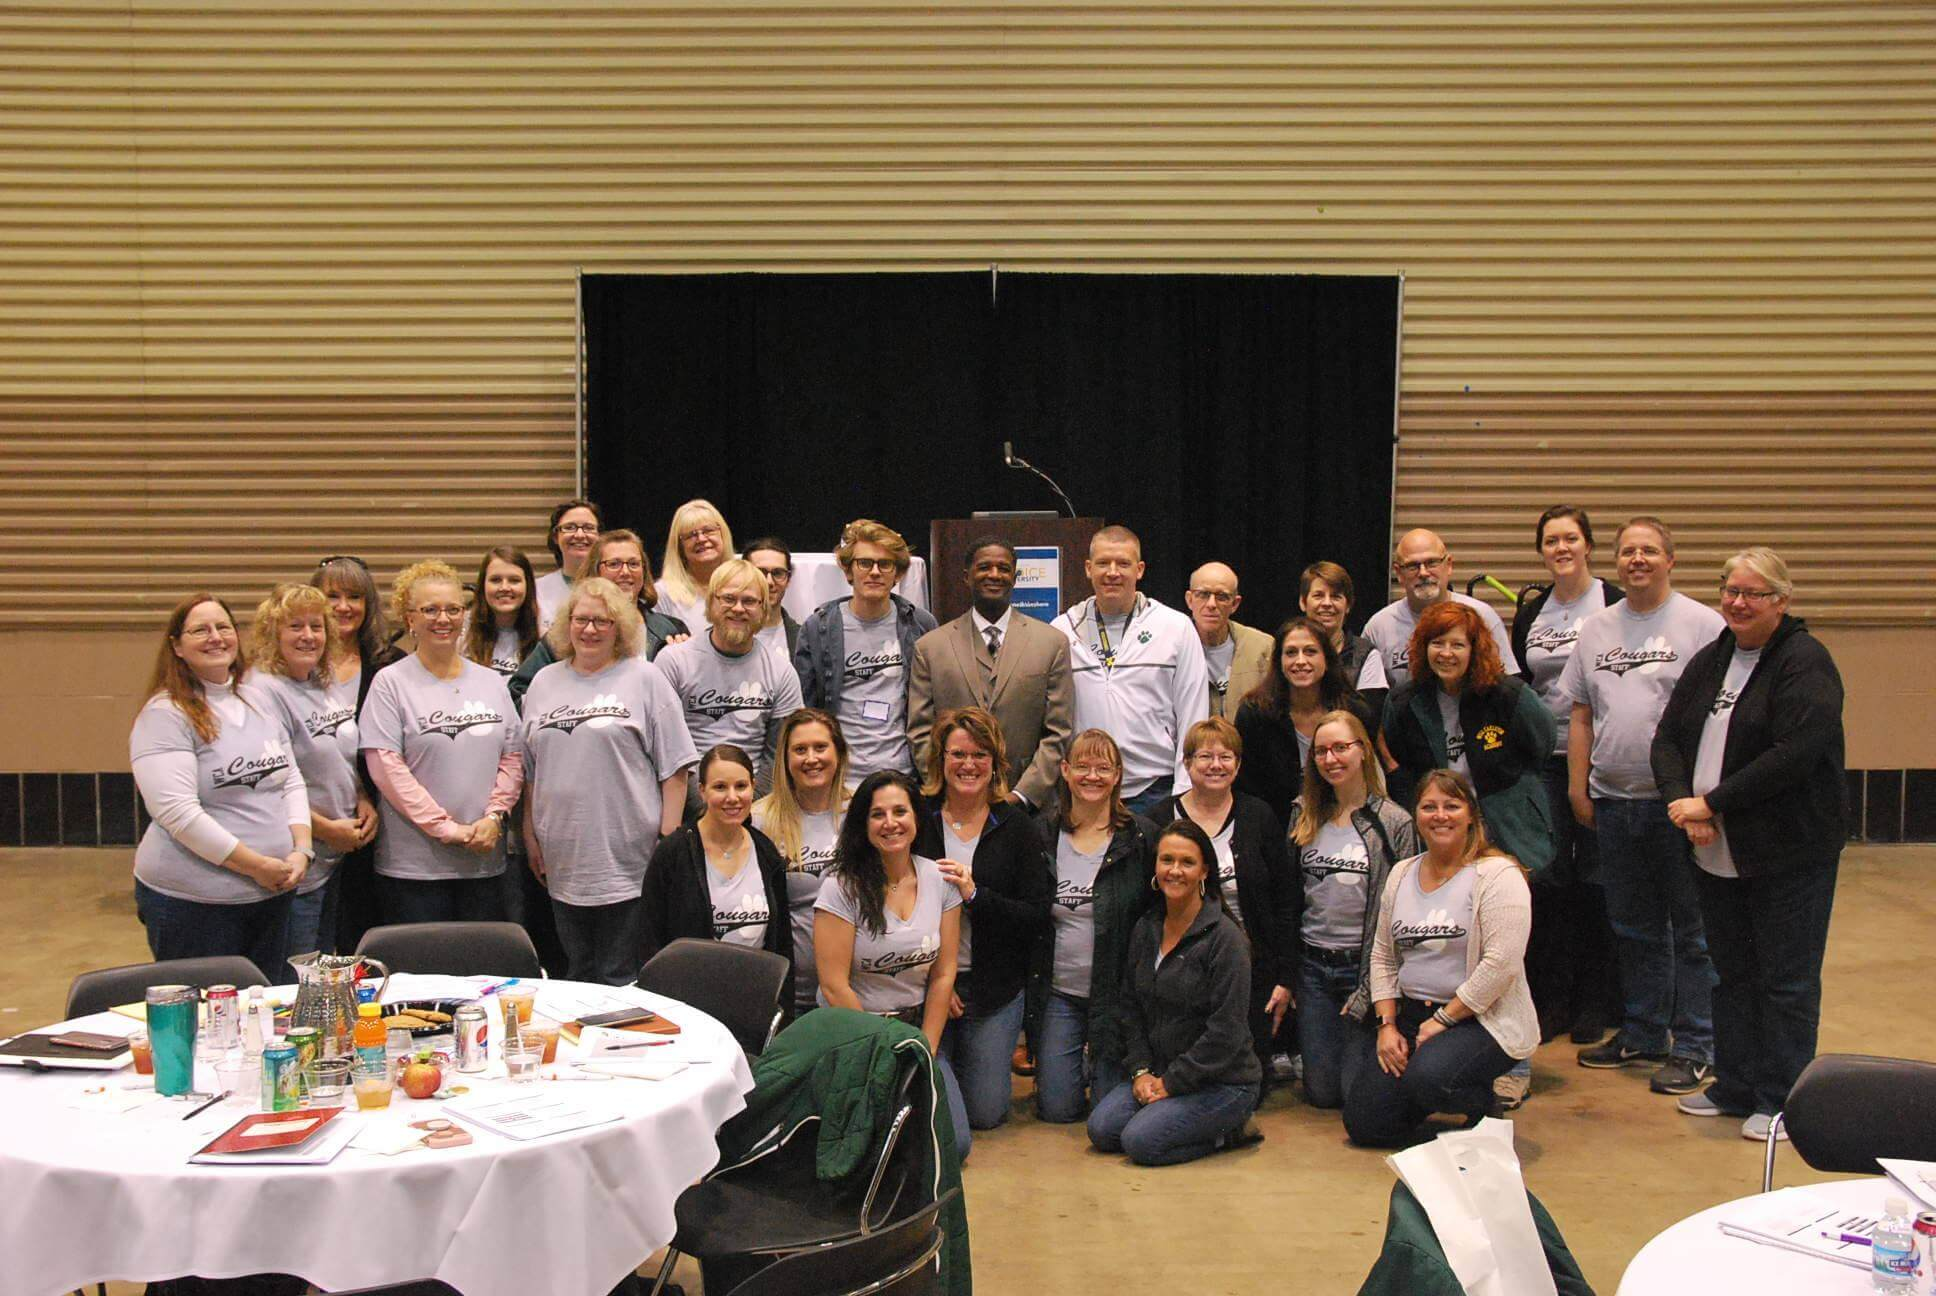 Choice U - WCA staff posing with guest speaker